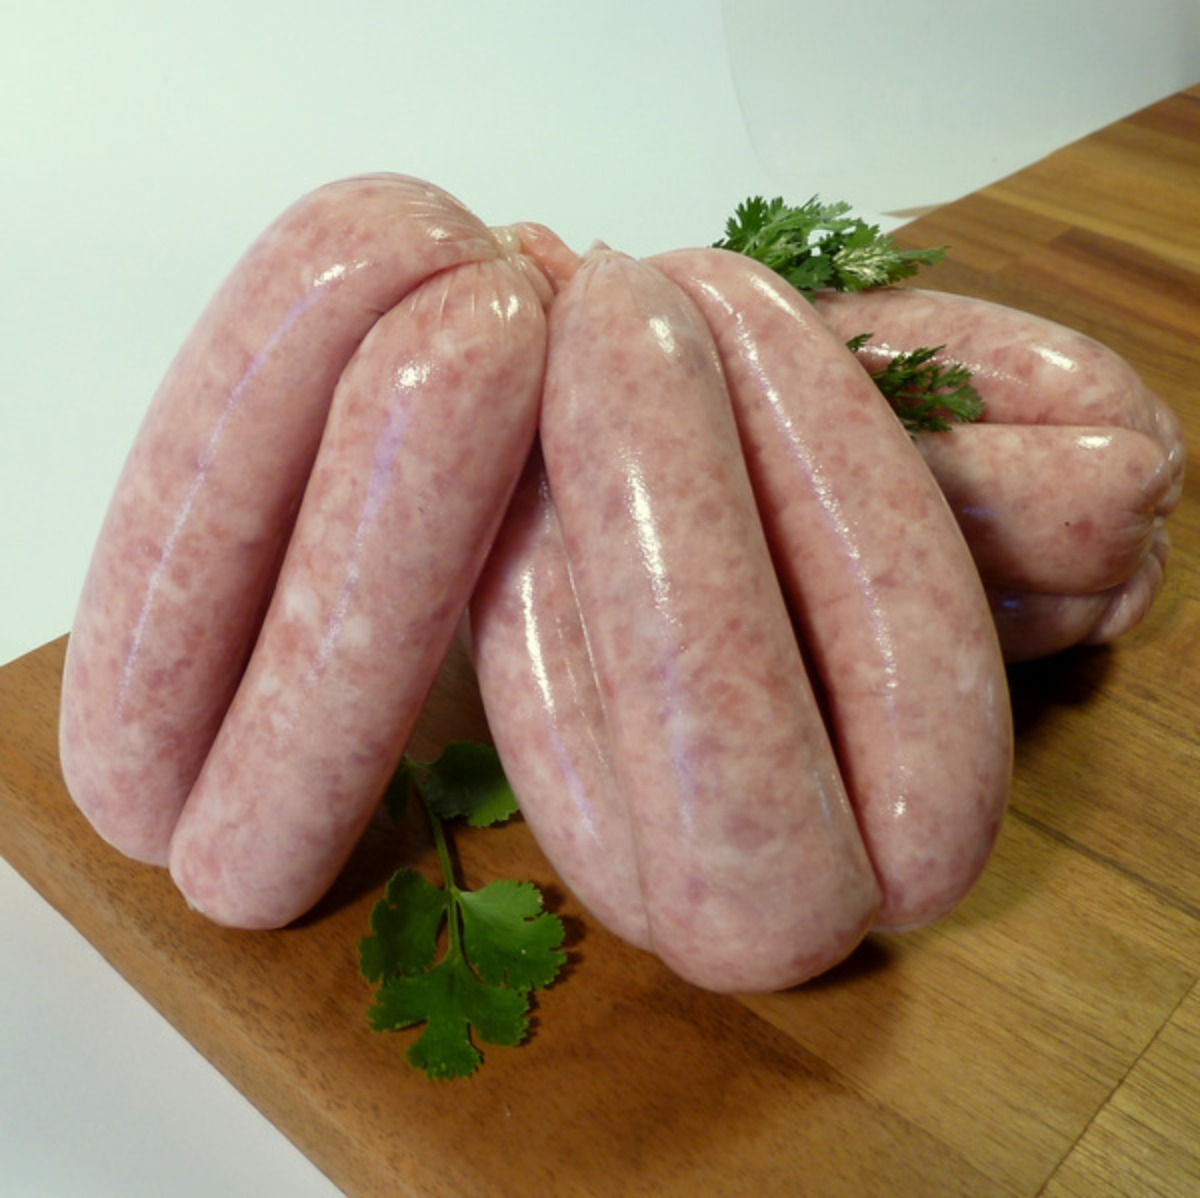 Fresh Pork Sausages 1x3lb